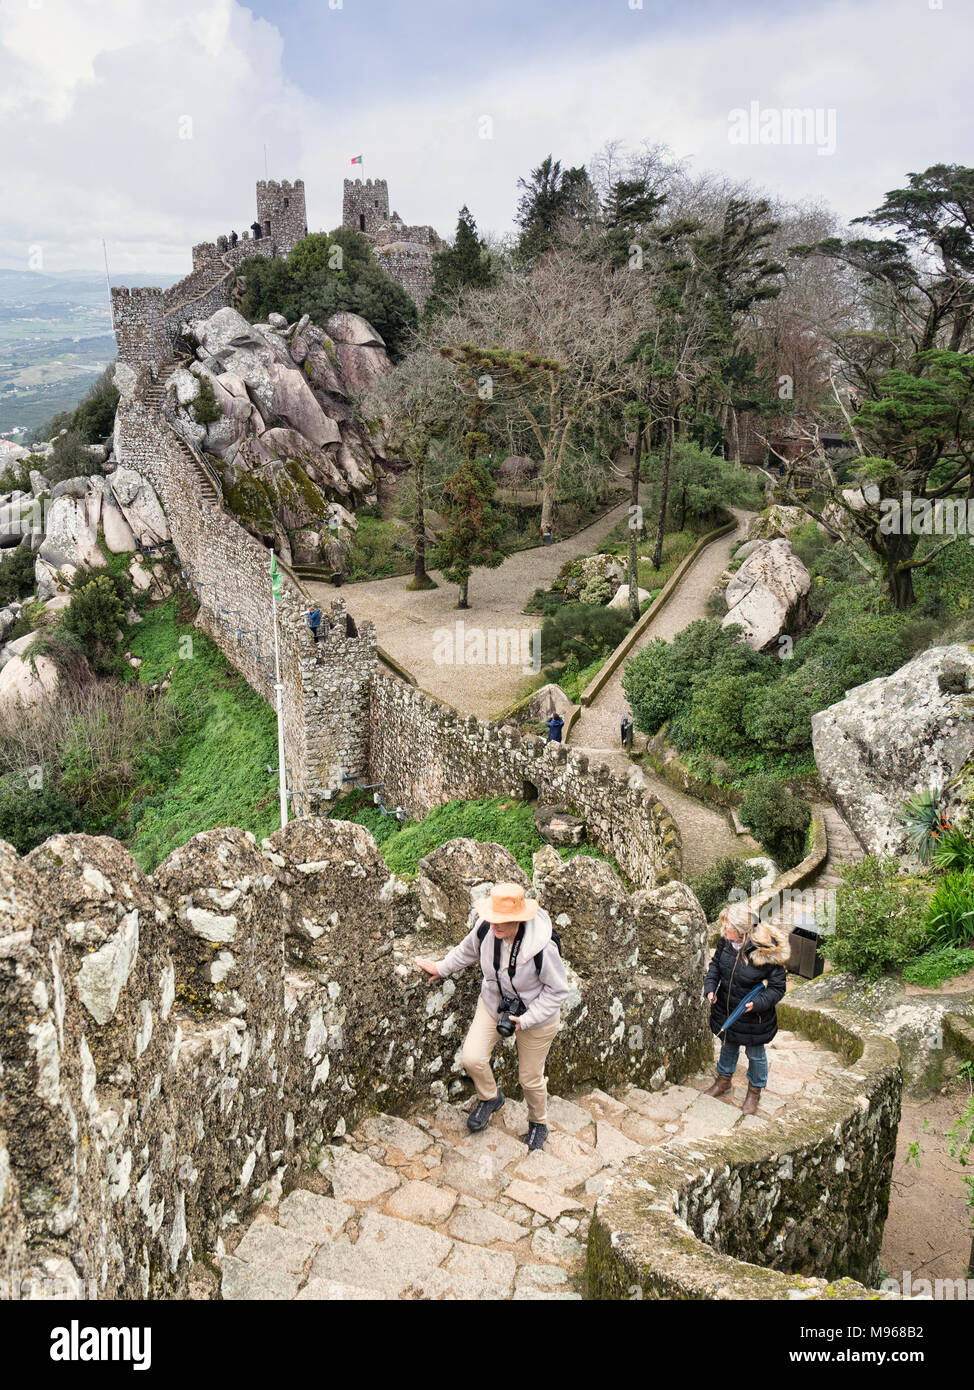 3 March 2018: Sintra, Portugal - Tourists explore the Castle of the Moors at Sintra, Portugal, on an early spring day. Stock Photo